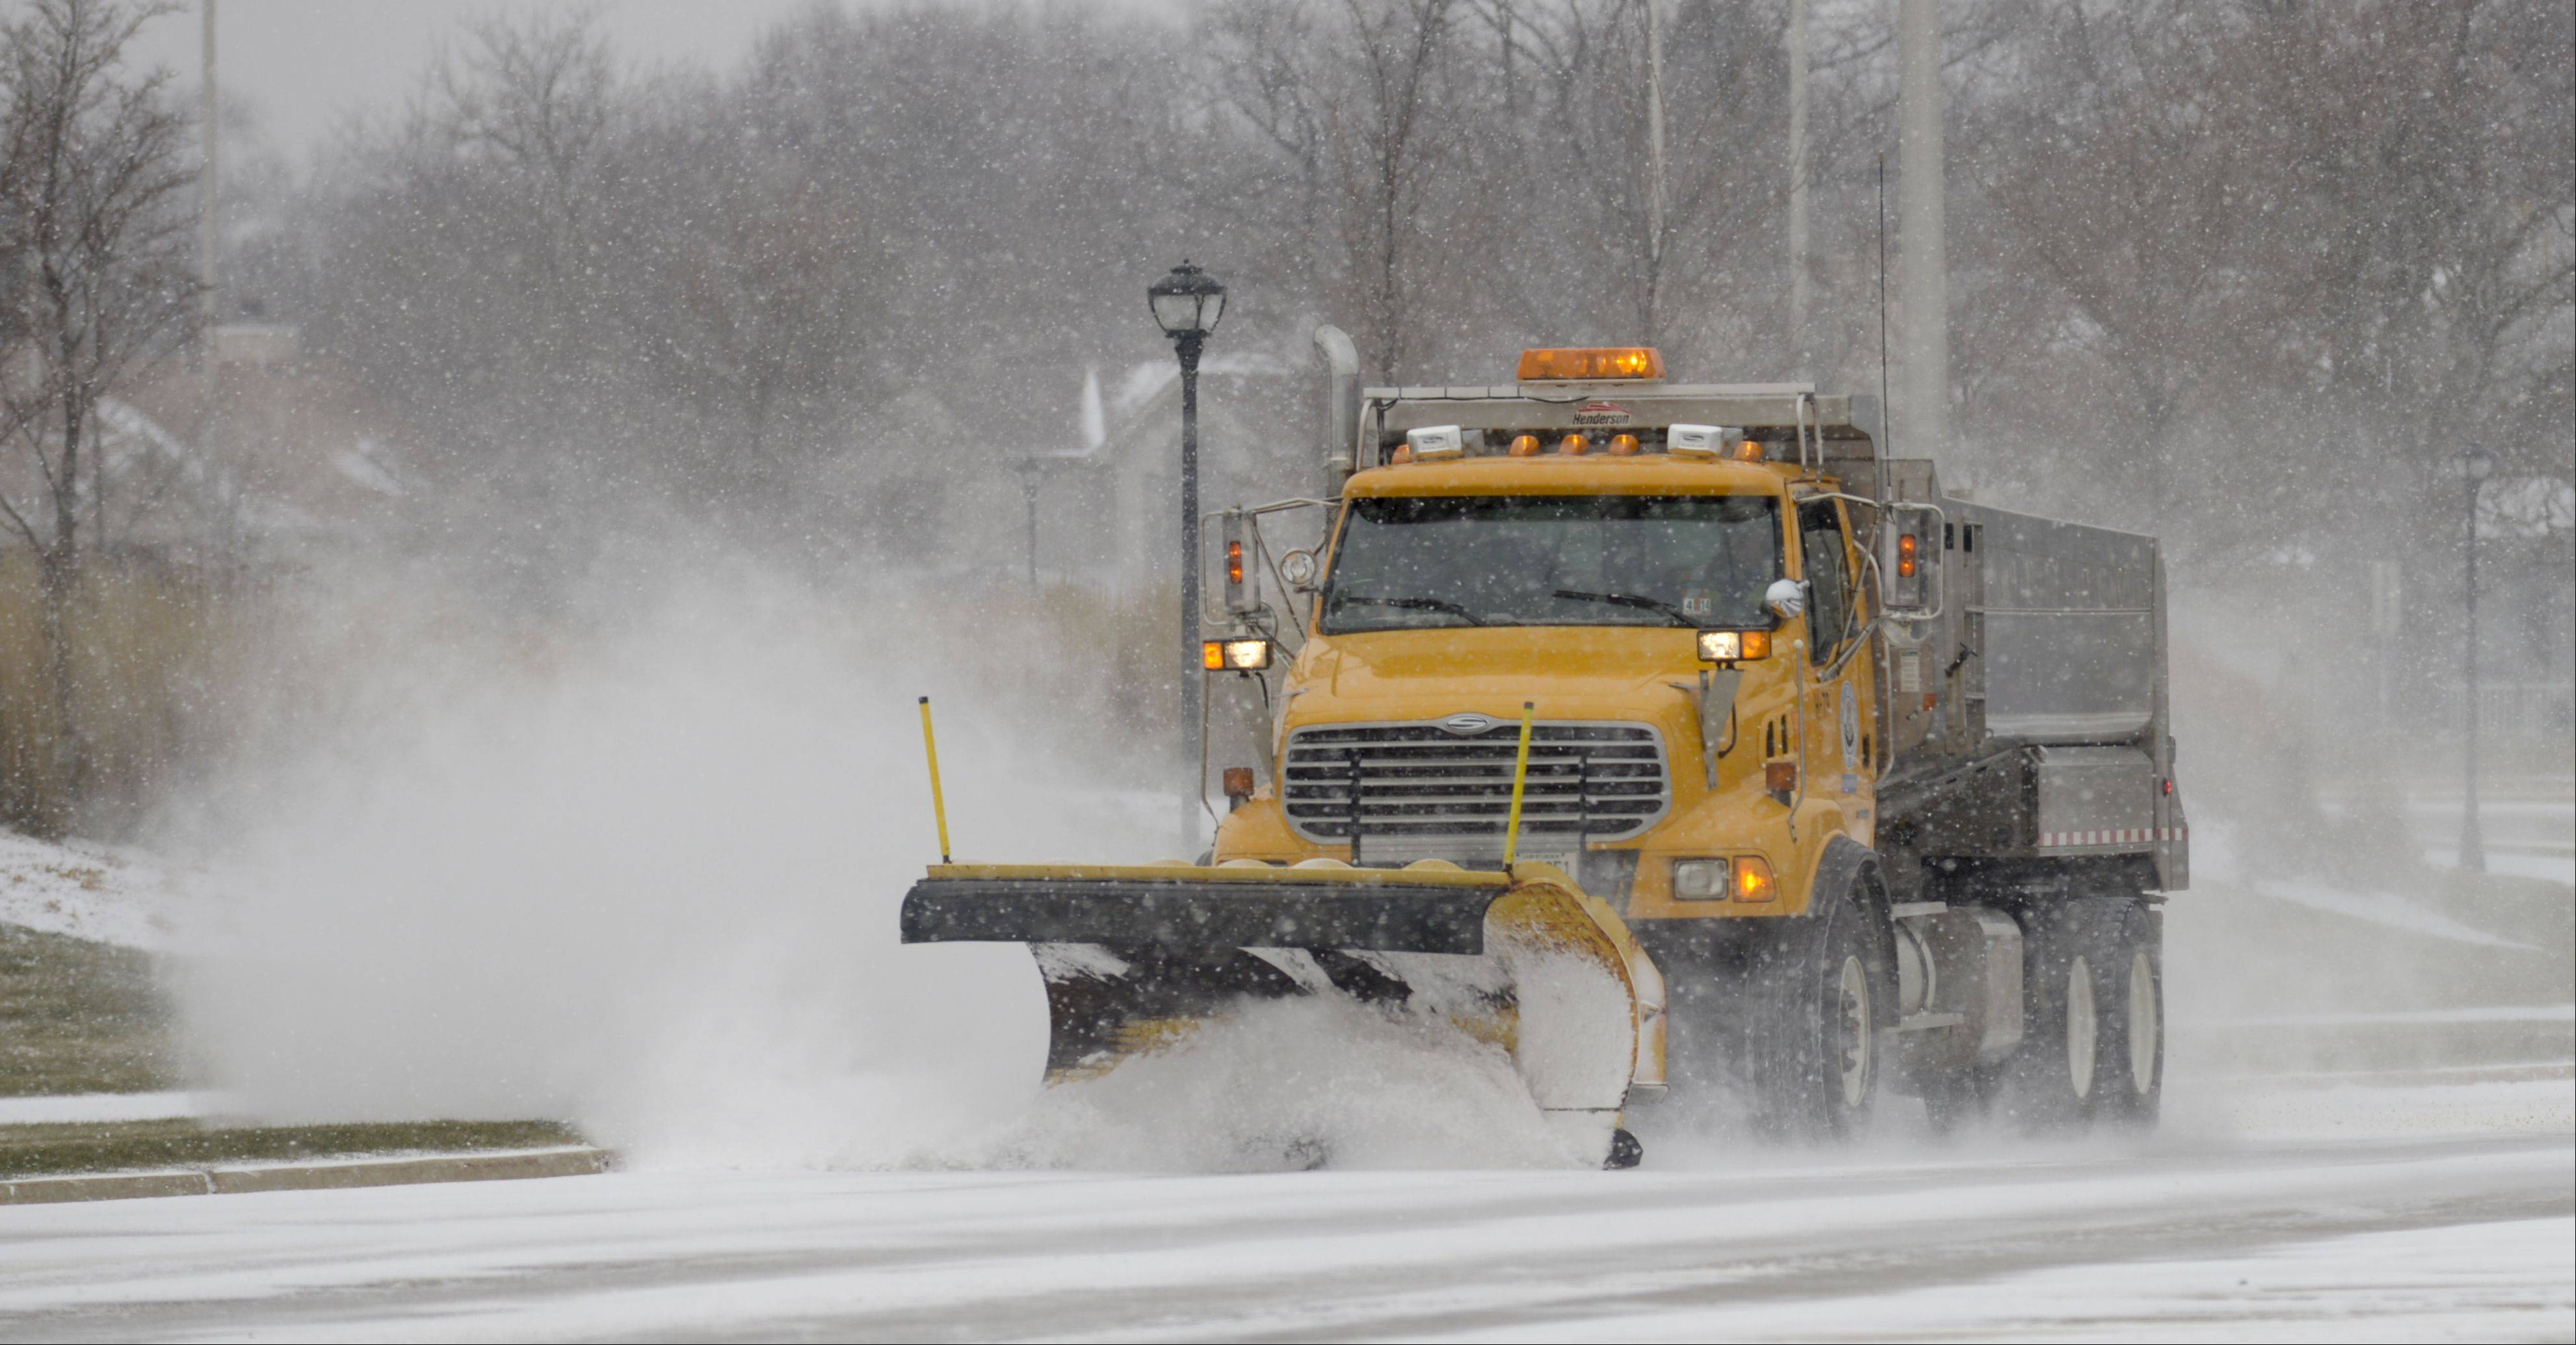 A DuPage County snowplow cleans the roads in Warrenville as Sunday's snowfall brought sometimes treacherous driving conditions to the area.